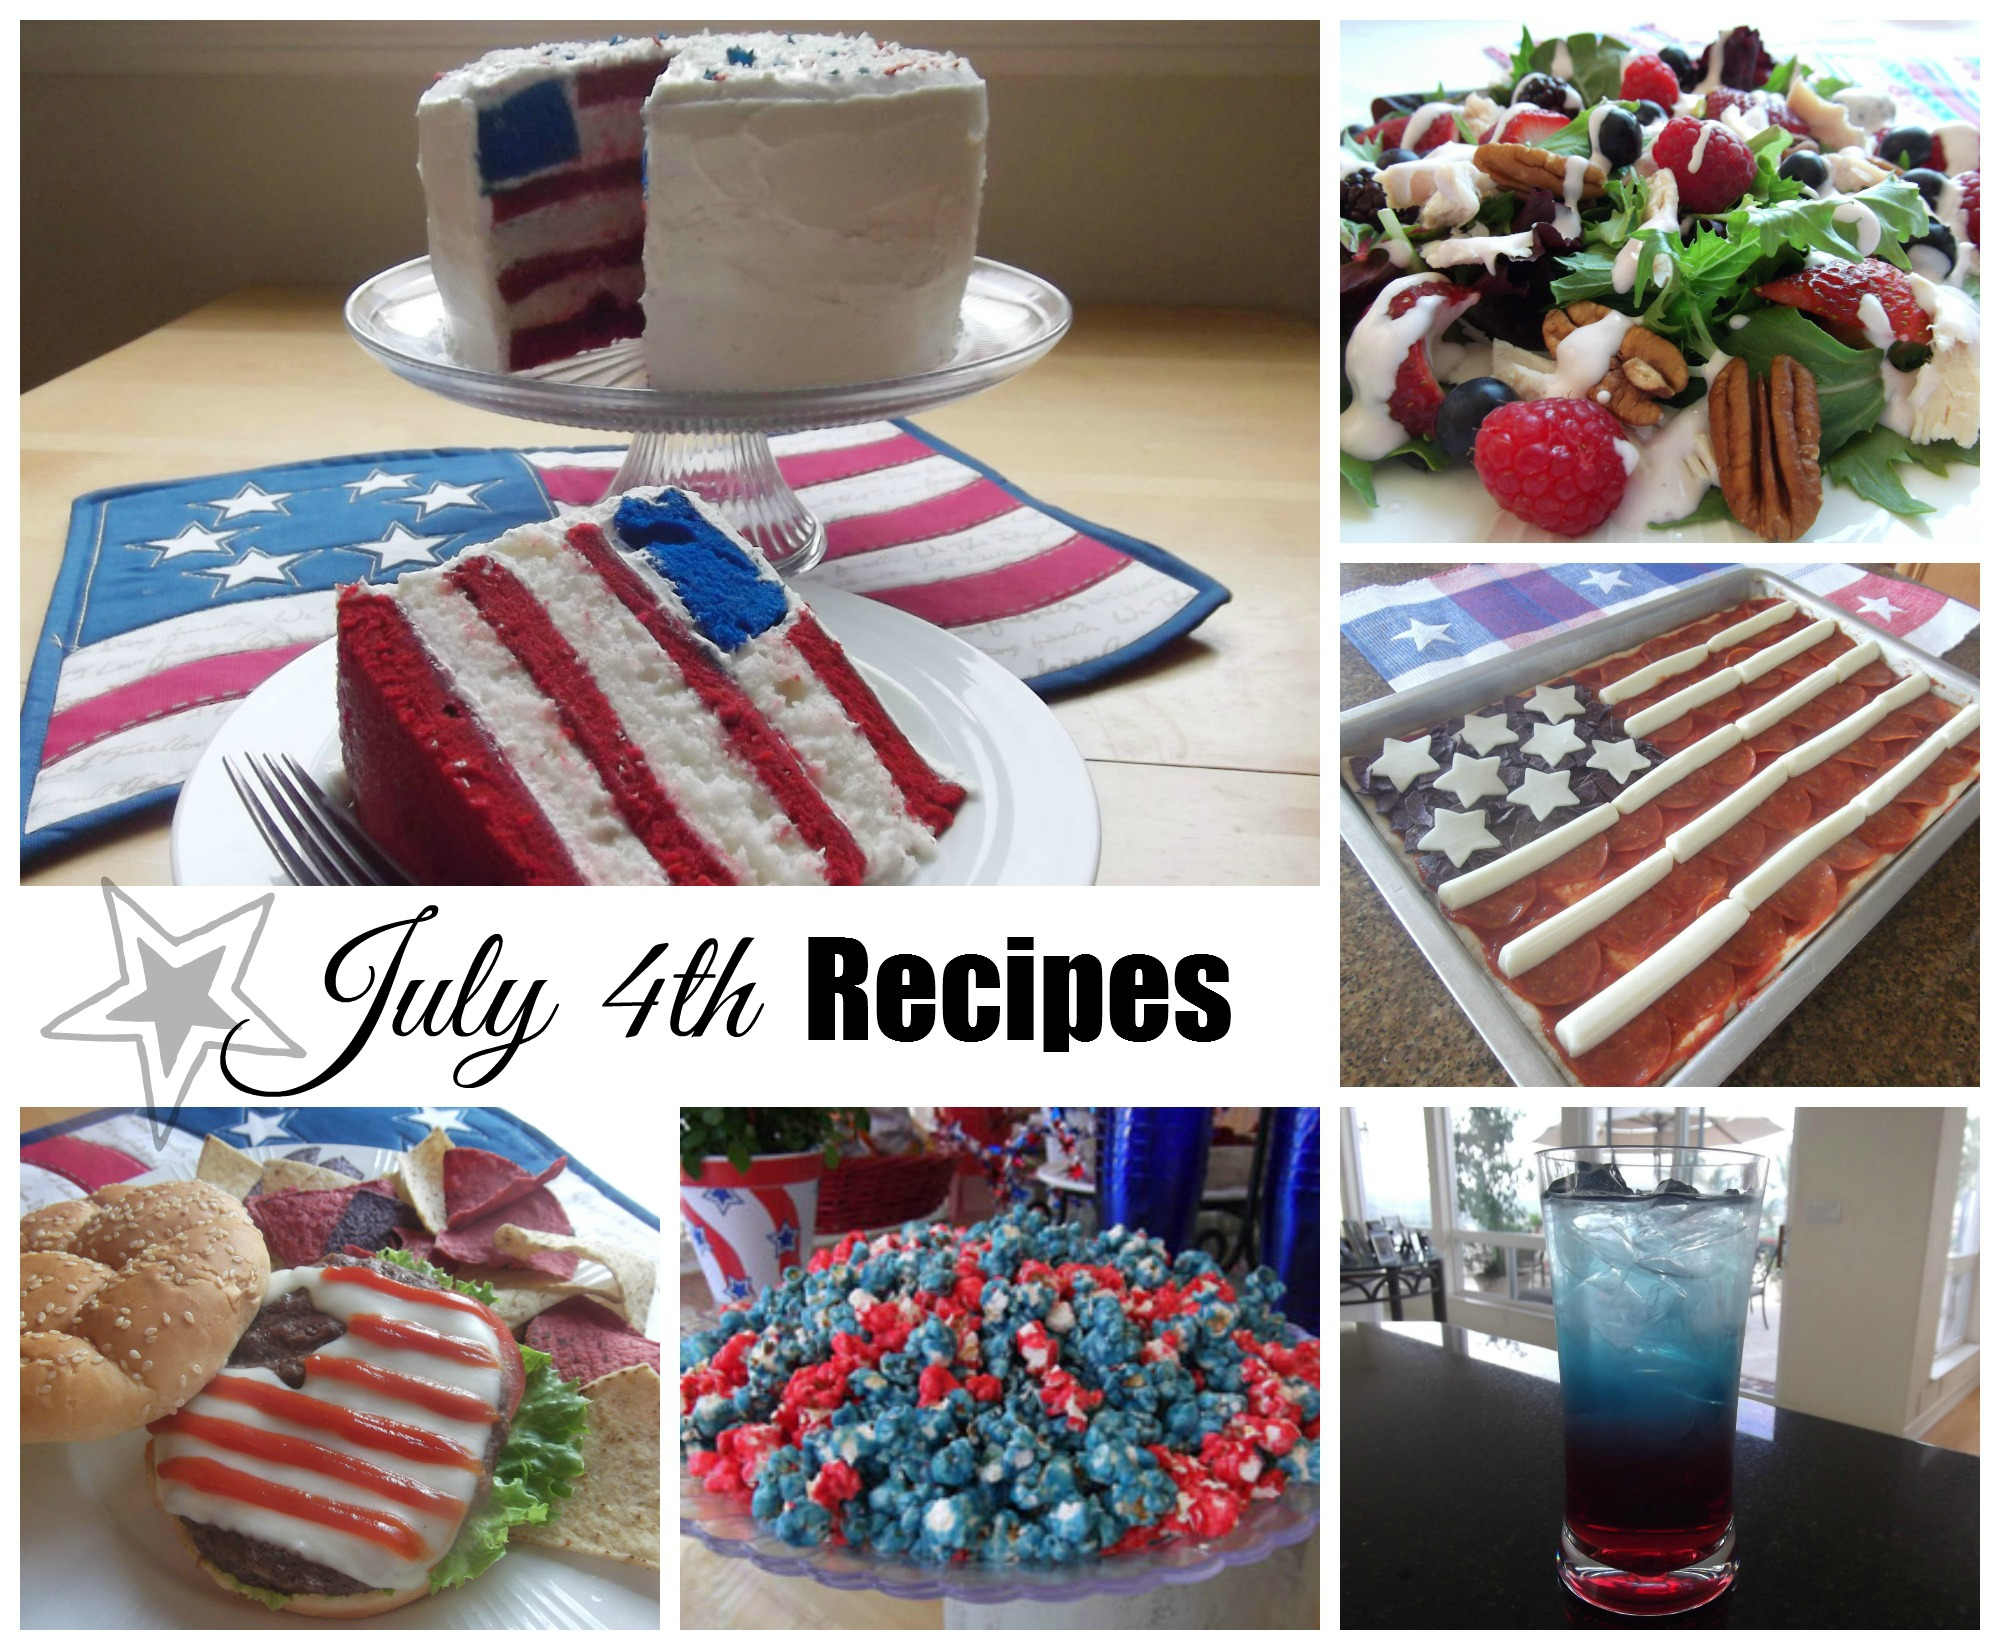 Patriotic Recipes for July 4th